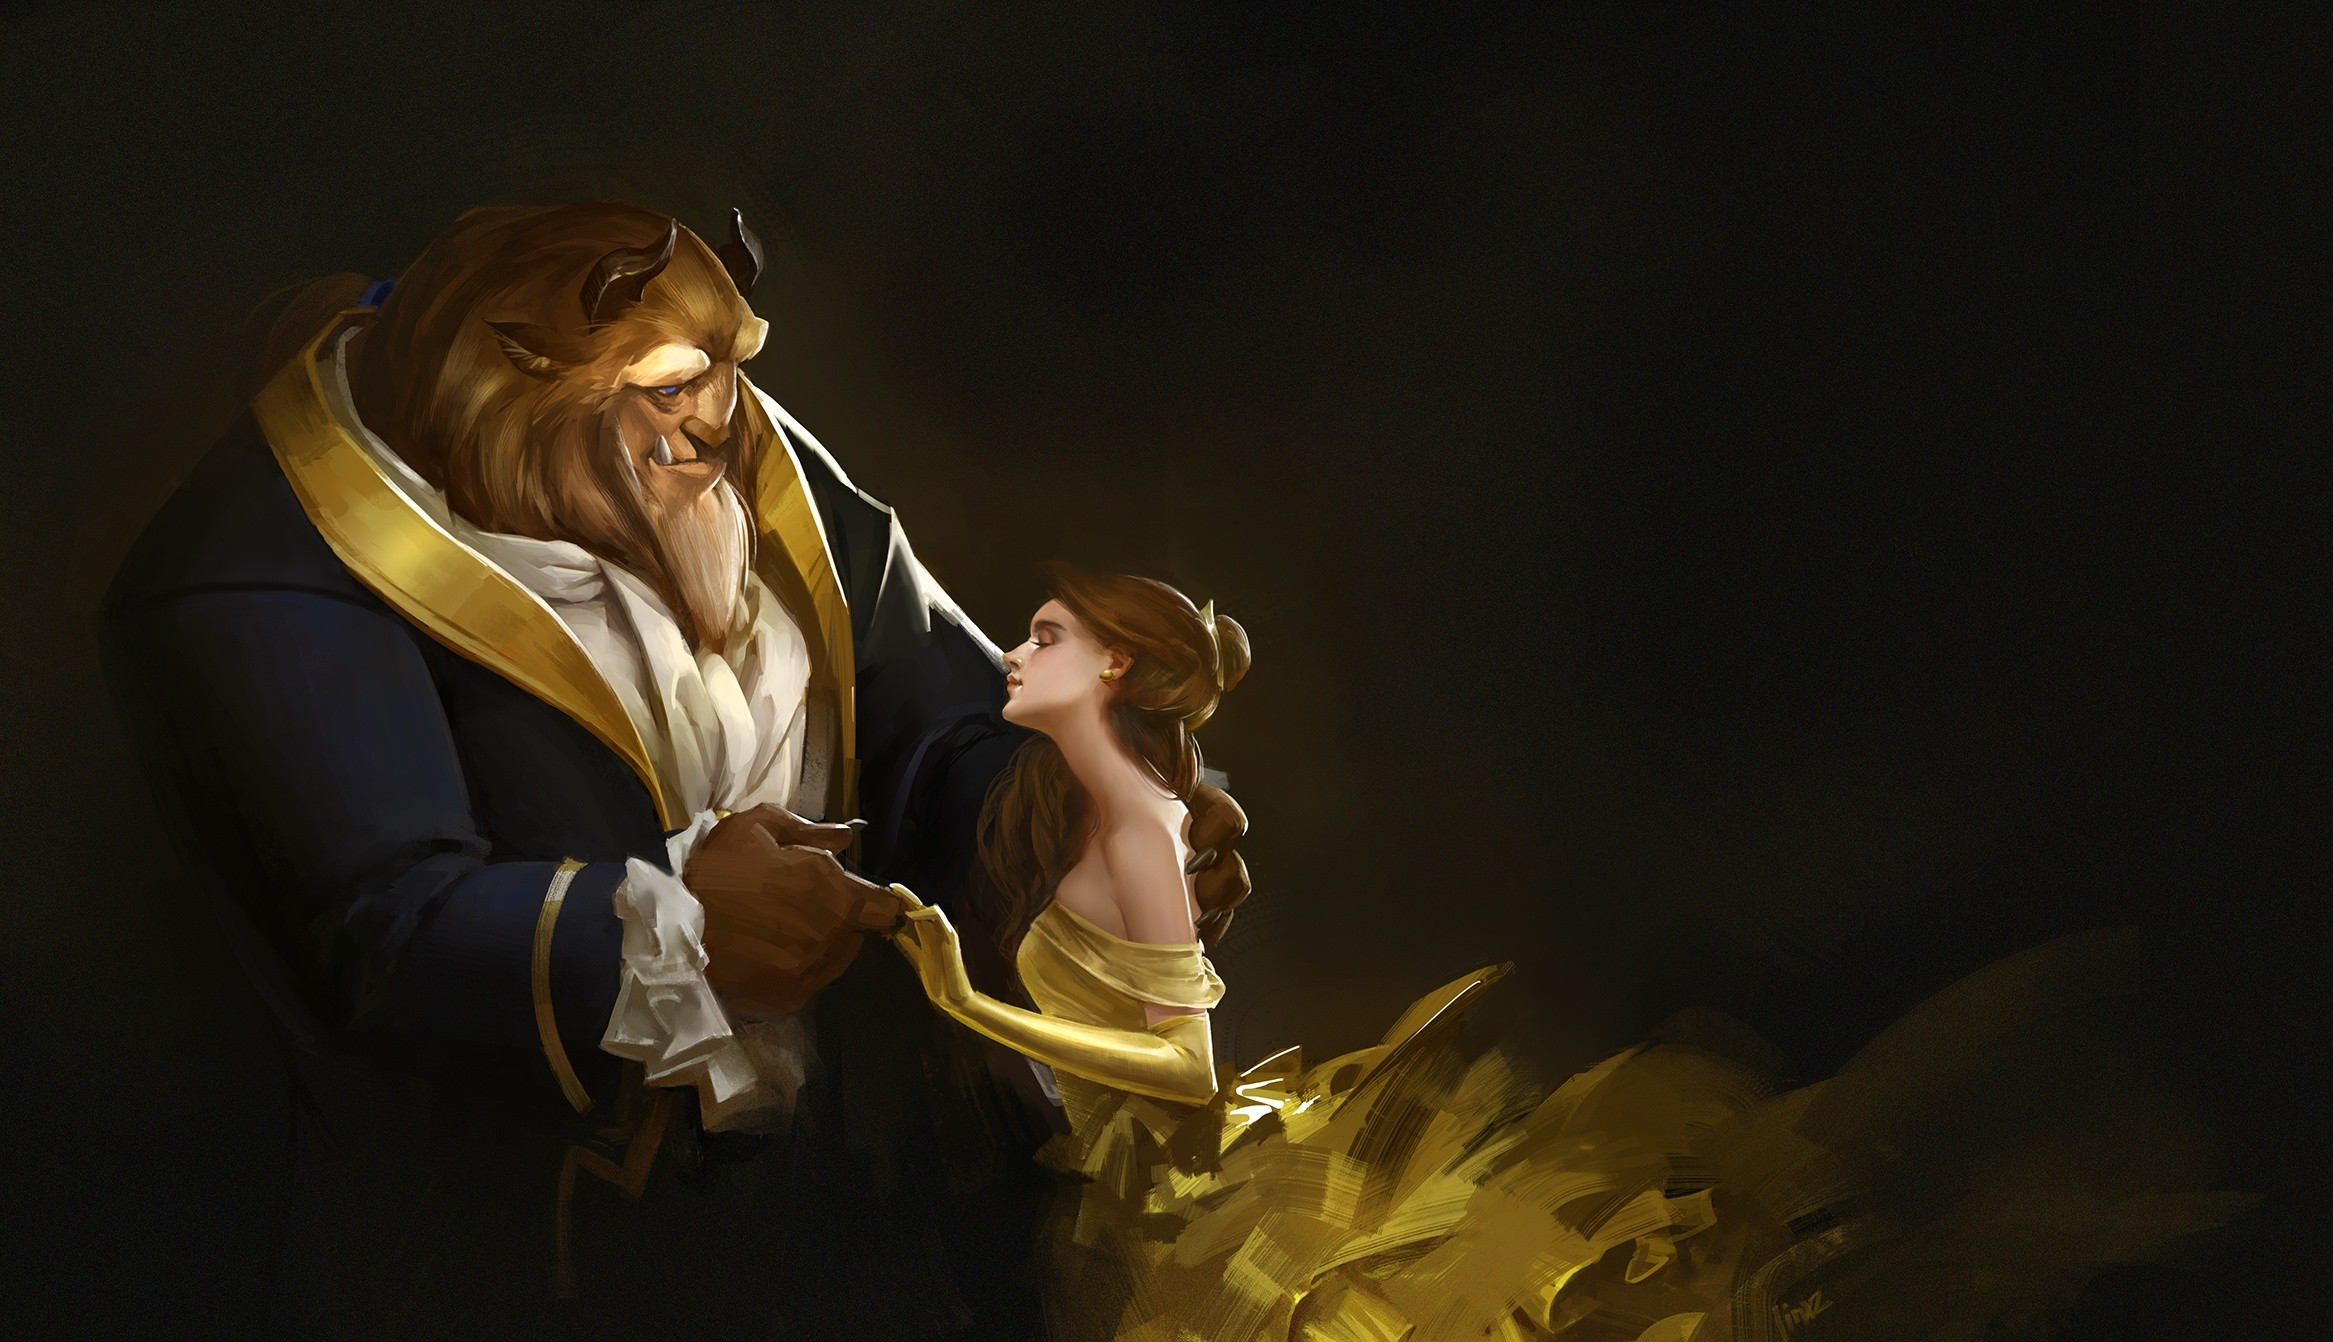 Beauty And The Beast Wallpaper 79 Images